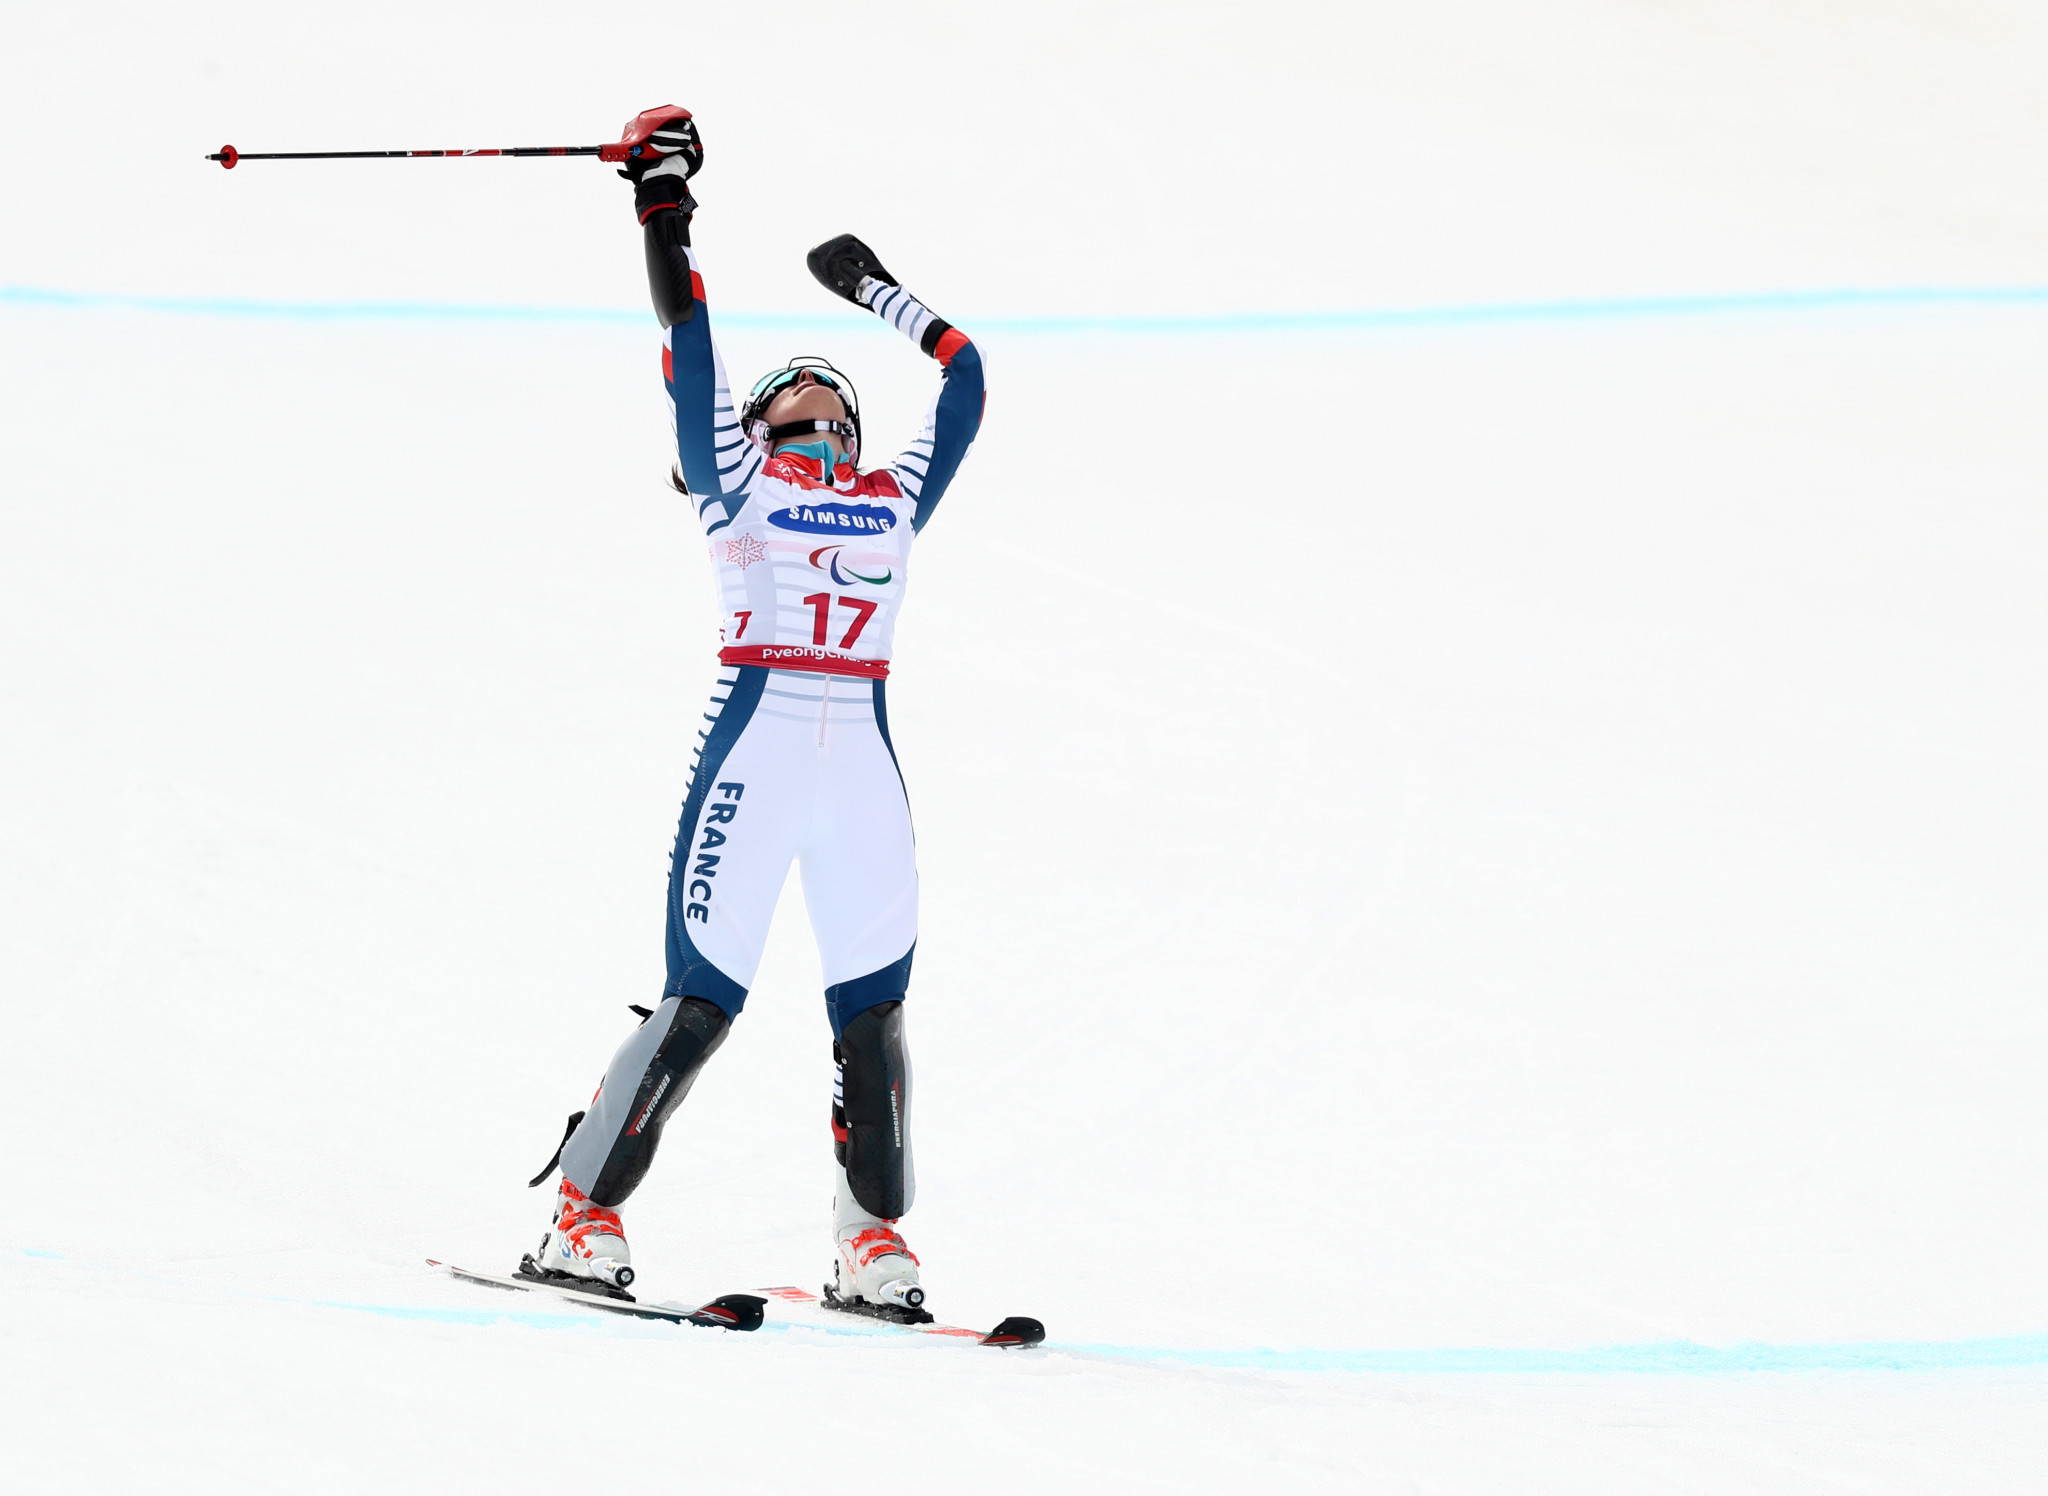 Marie Bochet won her second gold at the 2019 World Para Alpine Skiing Championships in the women's standing slalom ©Getty Images